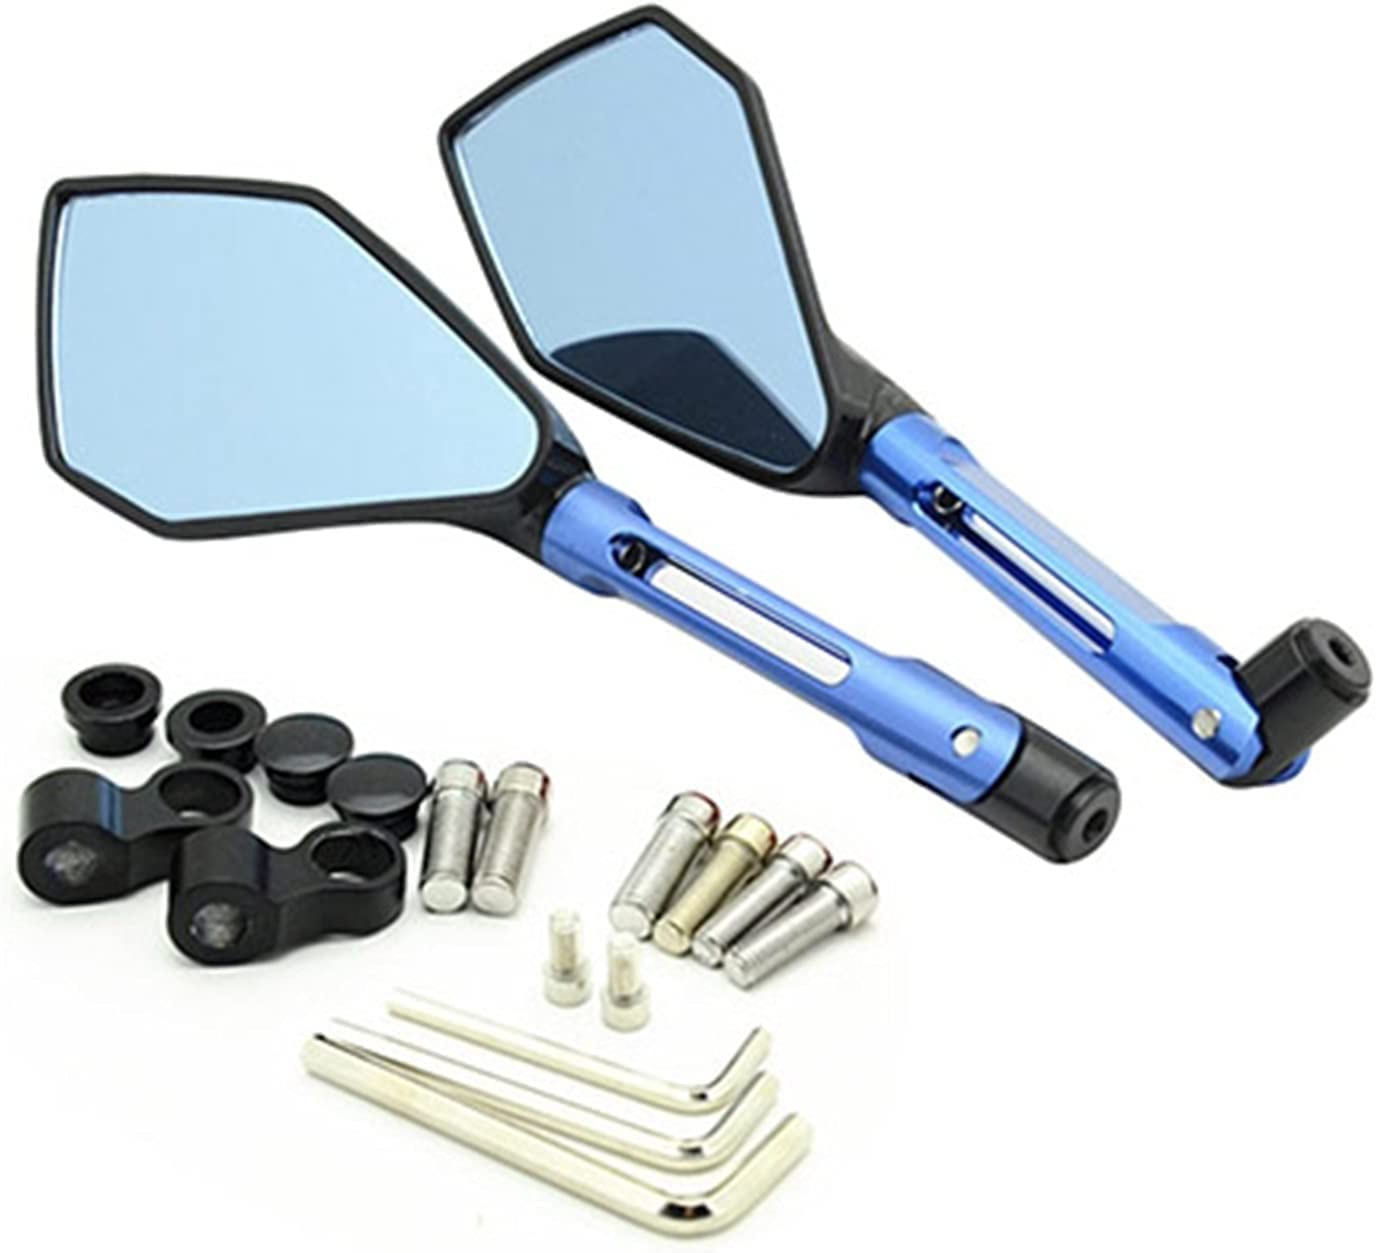 CNC Aluminum Motorcycle Rearview Mirror CB600 Department store CB1300 CB1000R for Challenge the lowest price of Japan